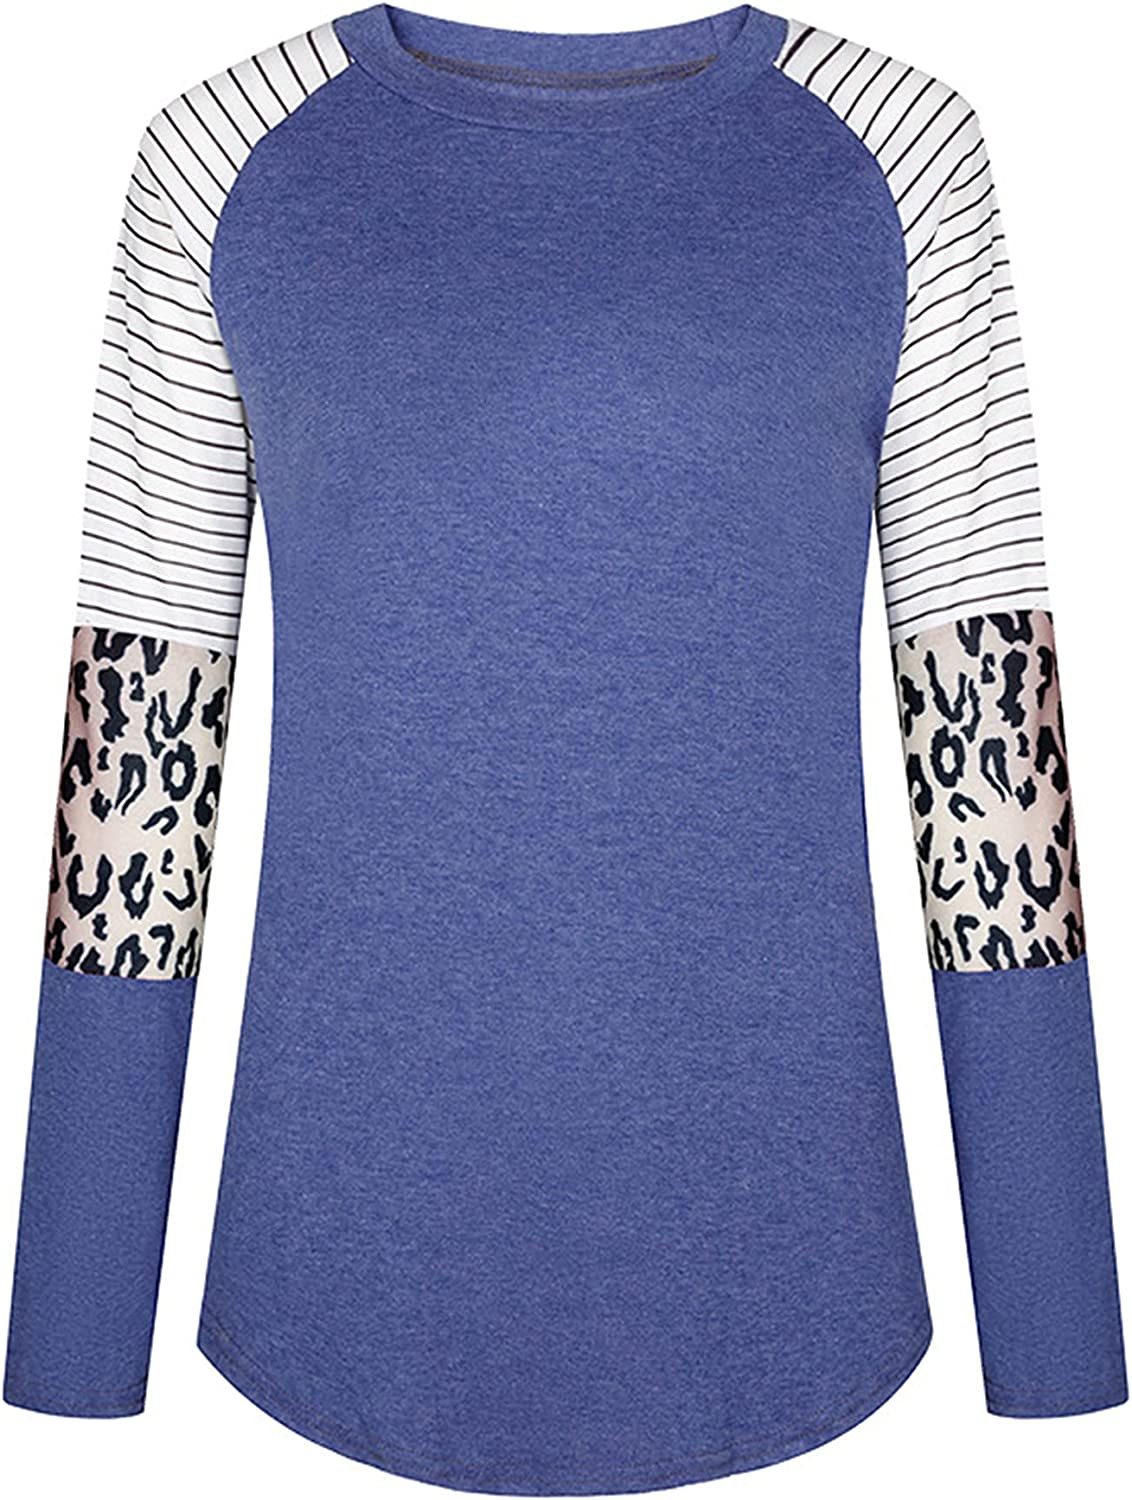 Andongnywell Women?s Leopard Printed Color Block Casual Tunic Blouse Round Neck Pullover Long Sleeve T Shirt Tops